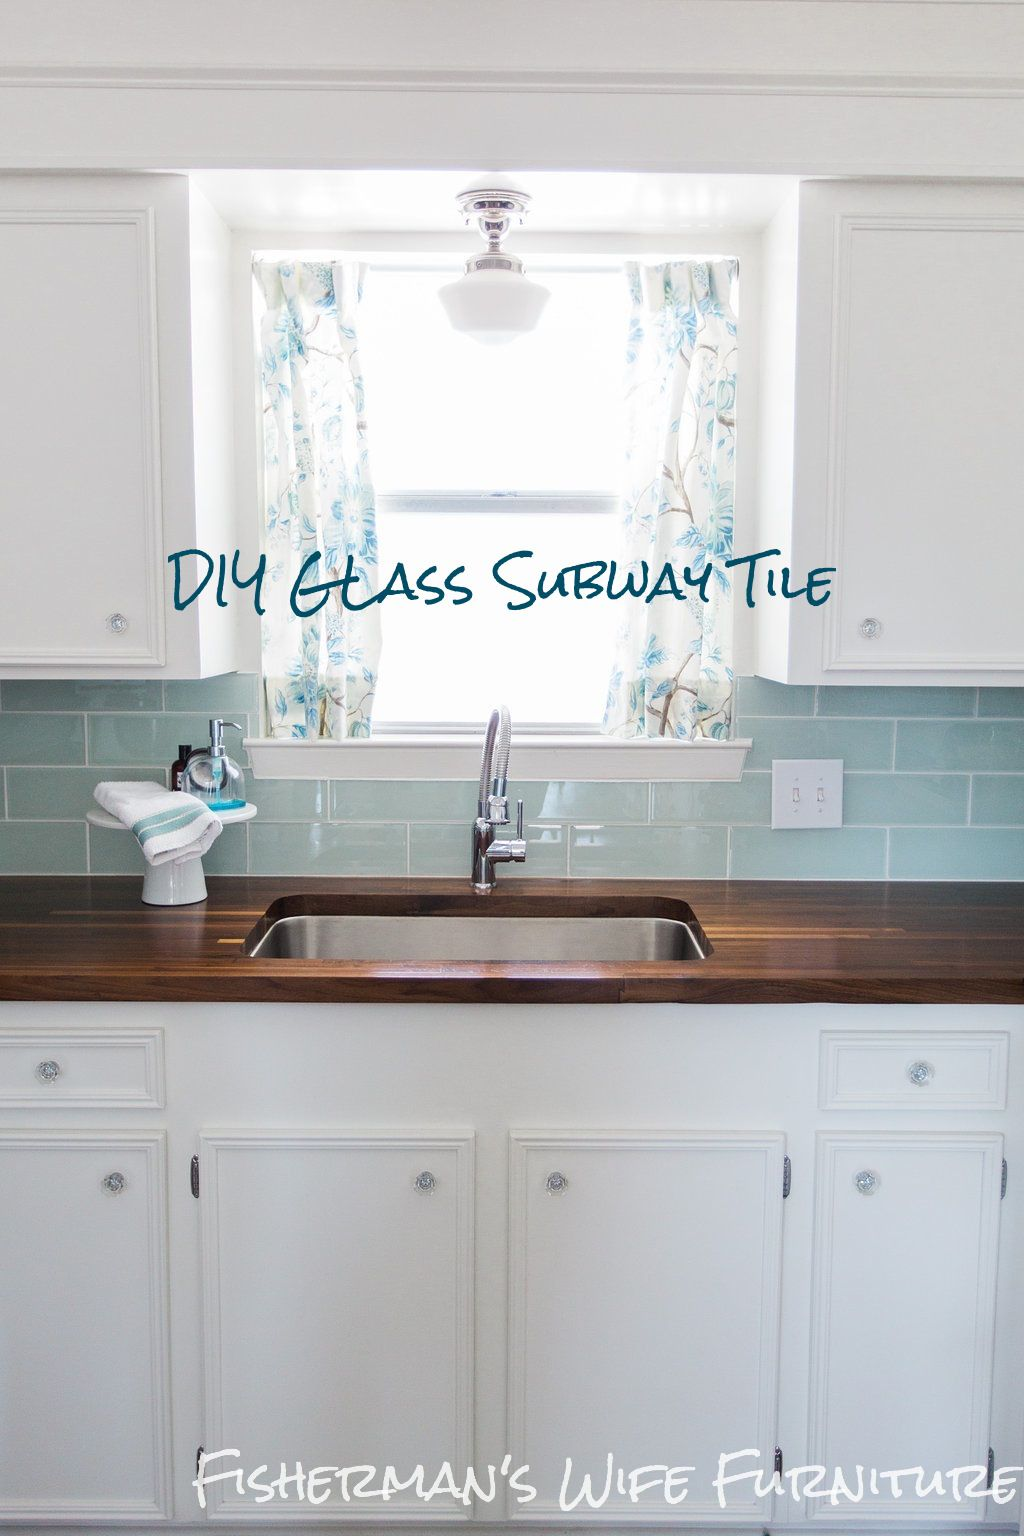 Diy glass tile backsplash how to cut and install glass subway tile diy glass tile backsplash how to cut and install glass subway tile dailygadgetfo Choice Image